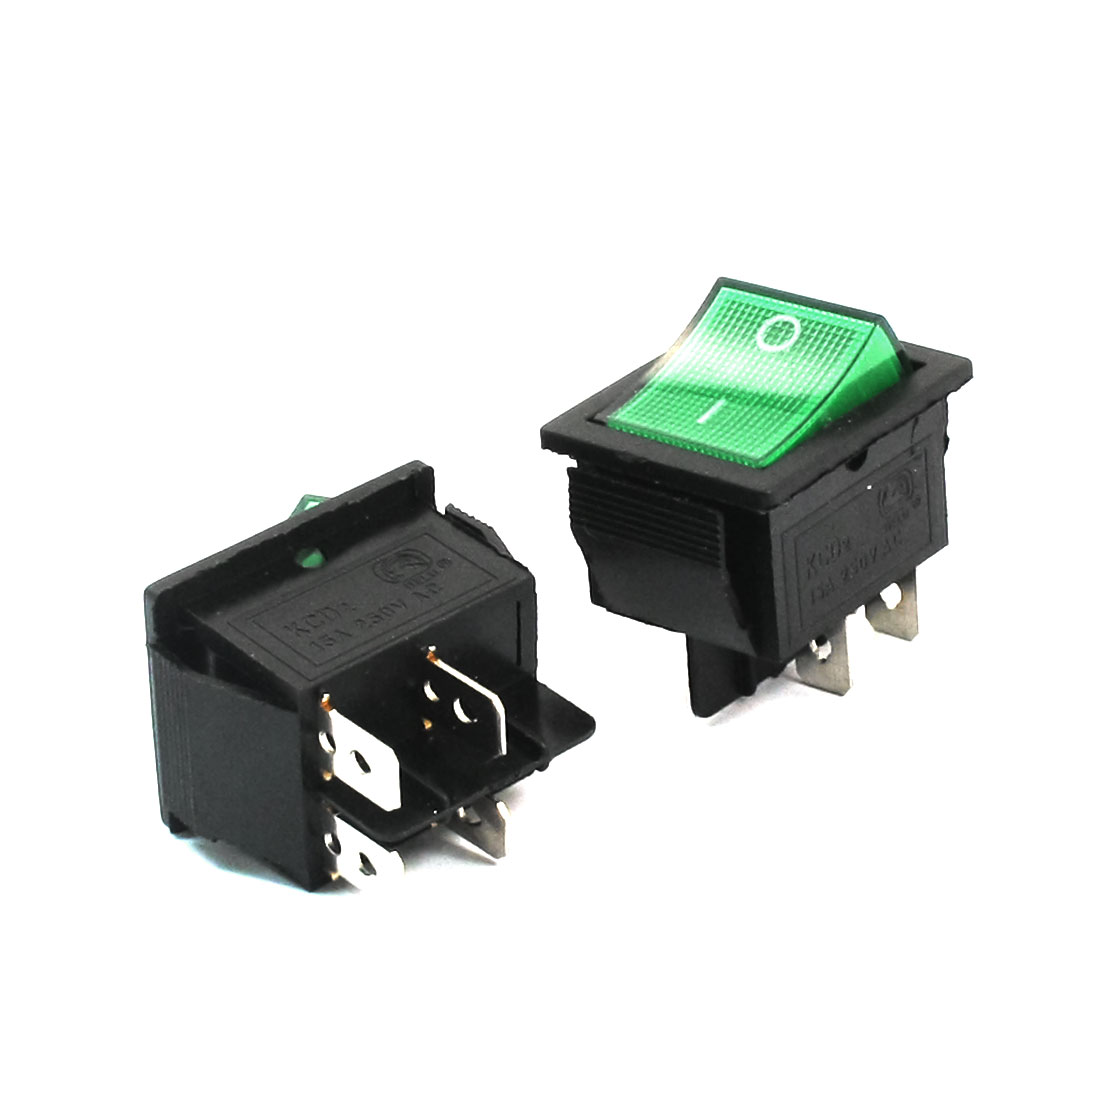 2pcs DPST ON/OFF 4 Pins Green Button Snap in Rocker Switch AC250V 15A